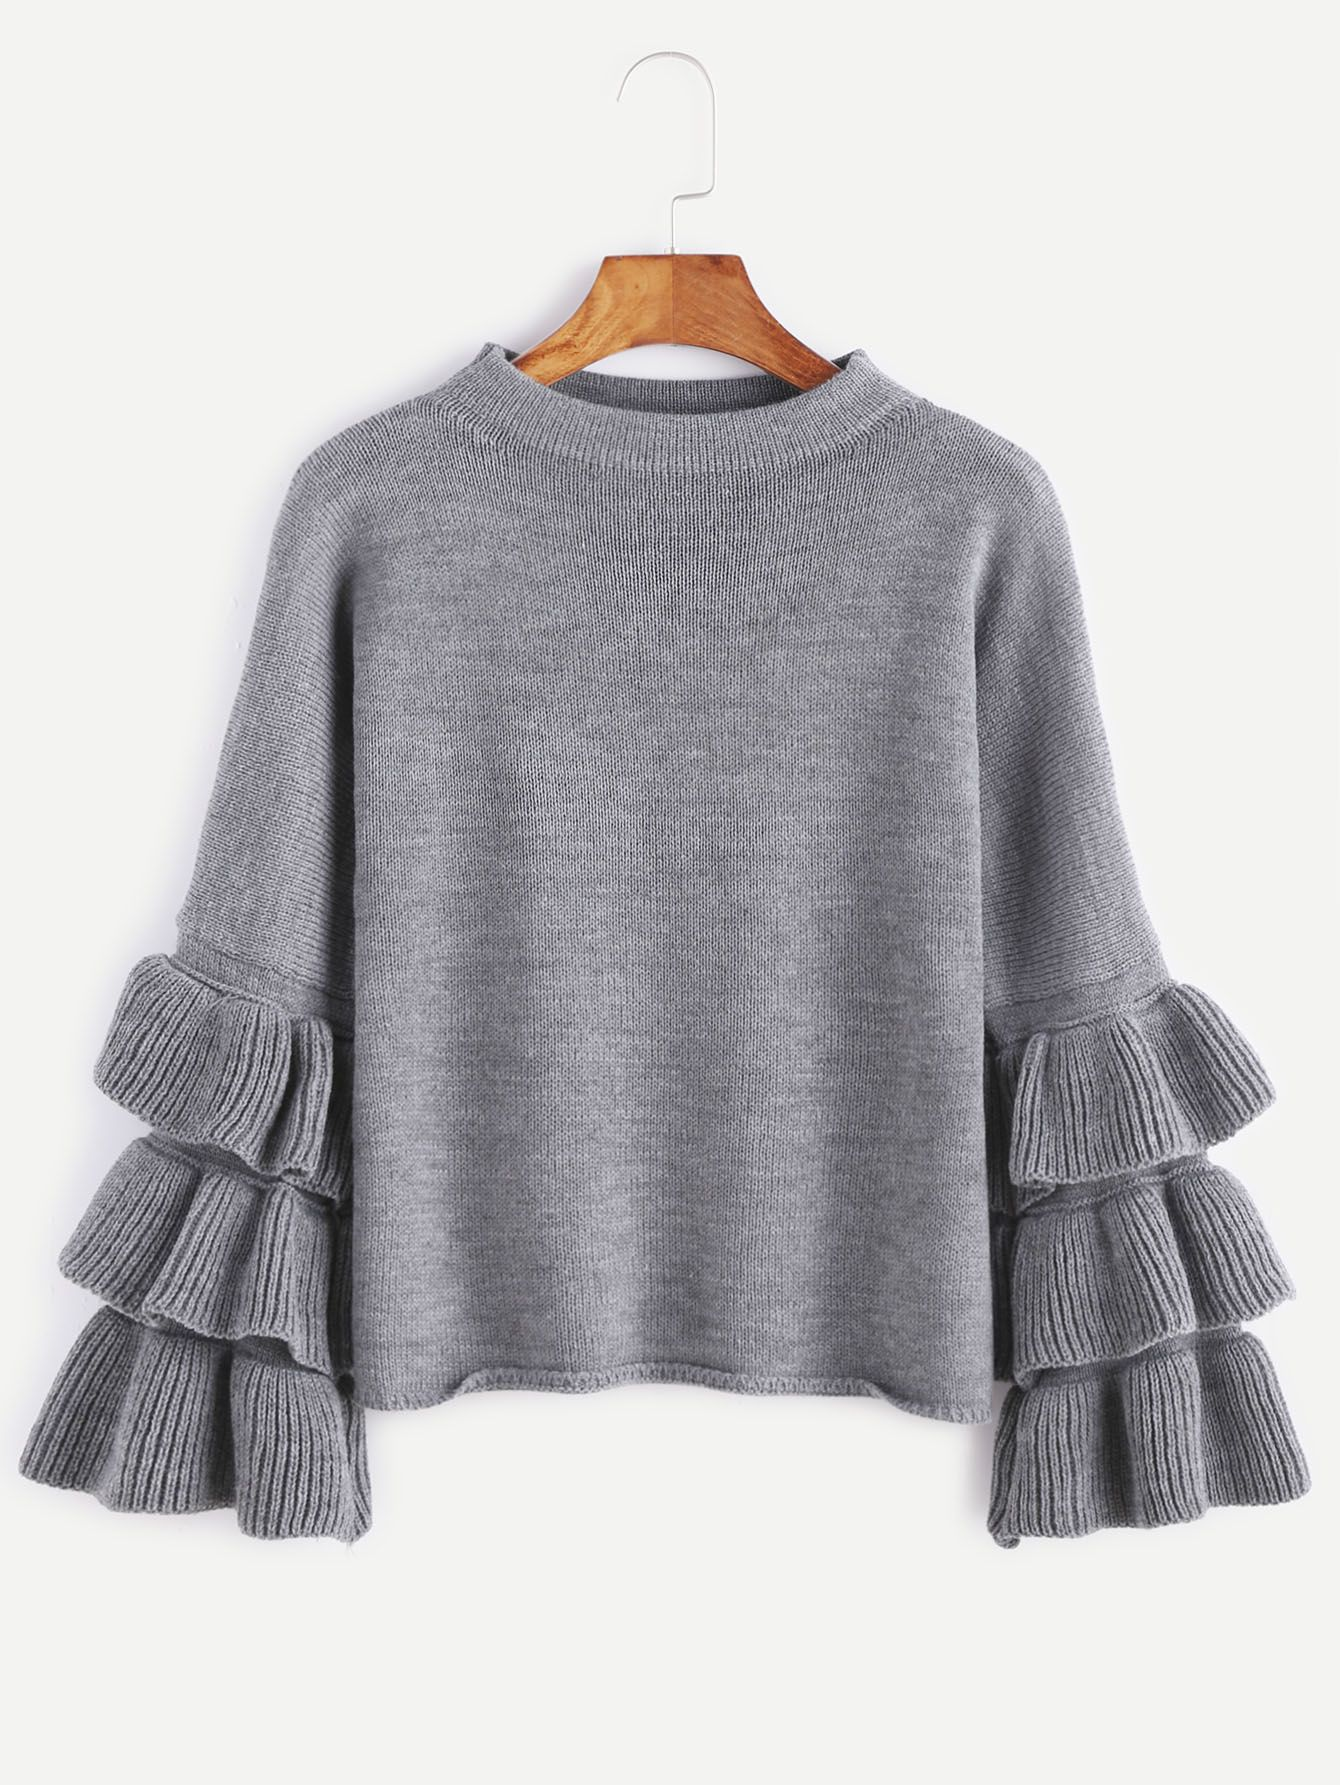 Grey Layered Ruffle Sleeve Pullover Sweater | Ruffle sleeve ...